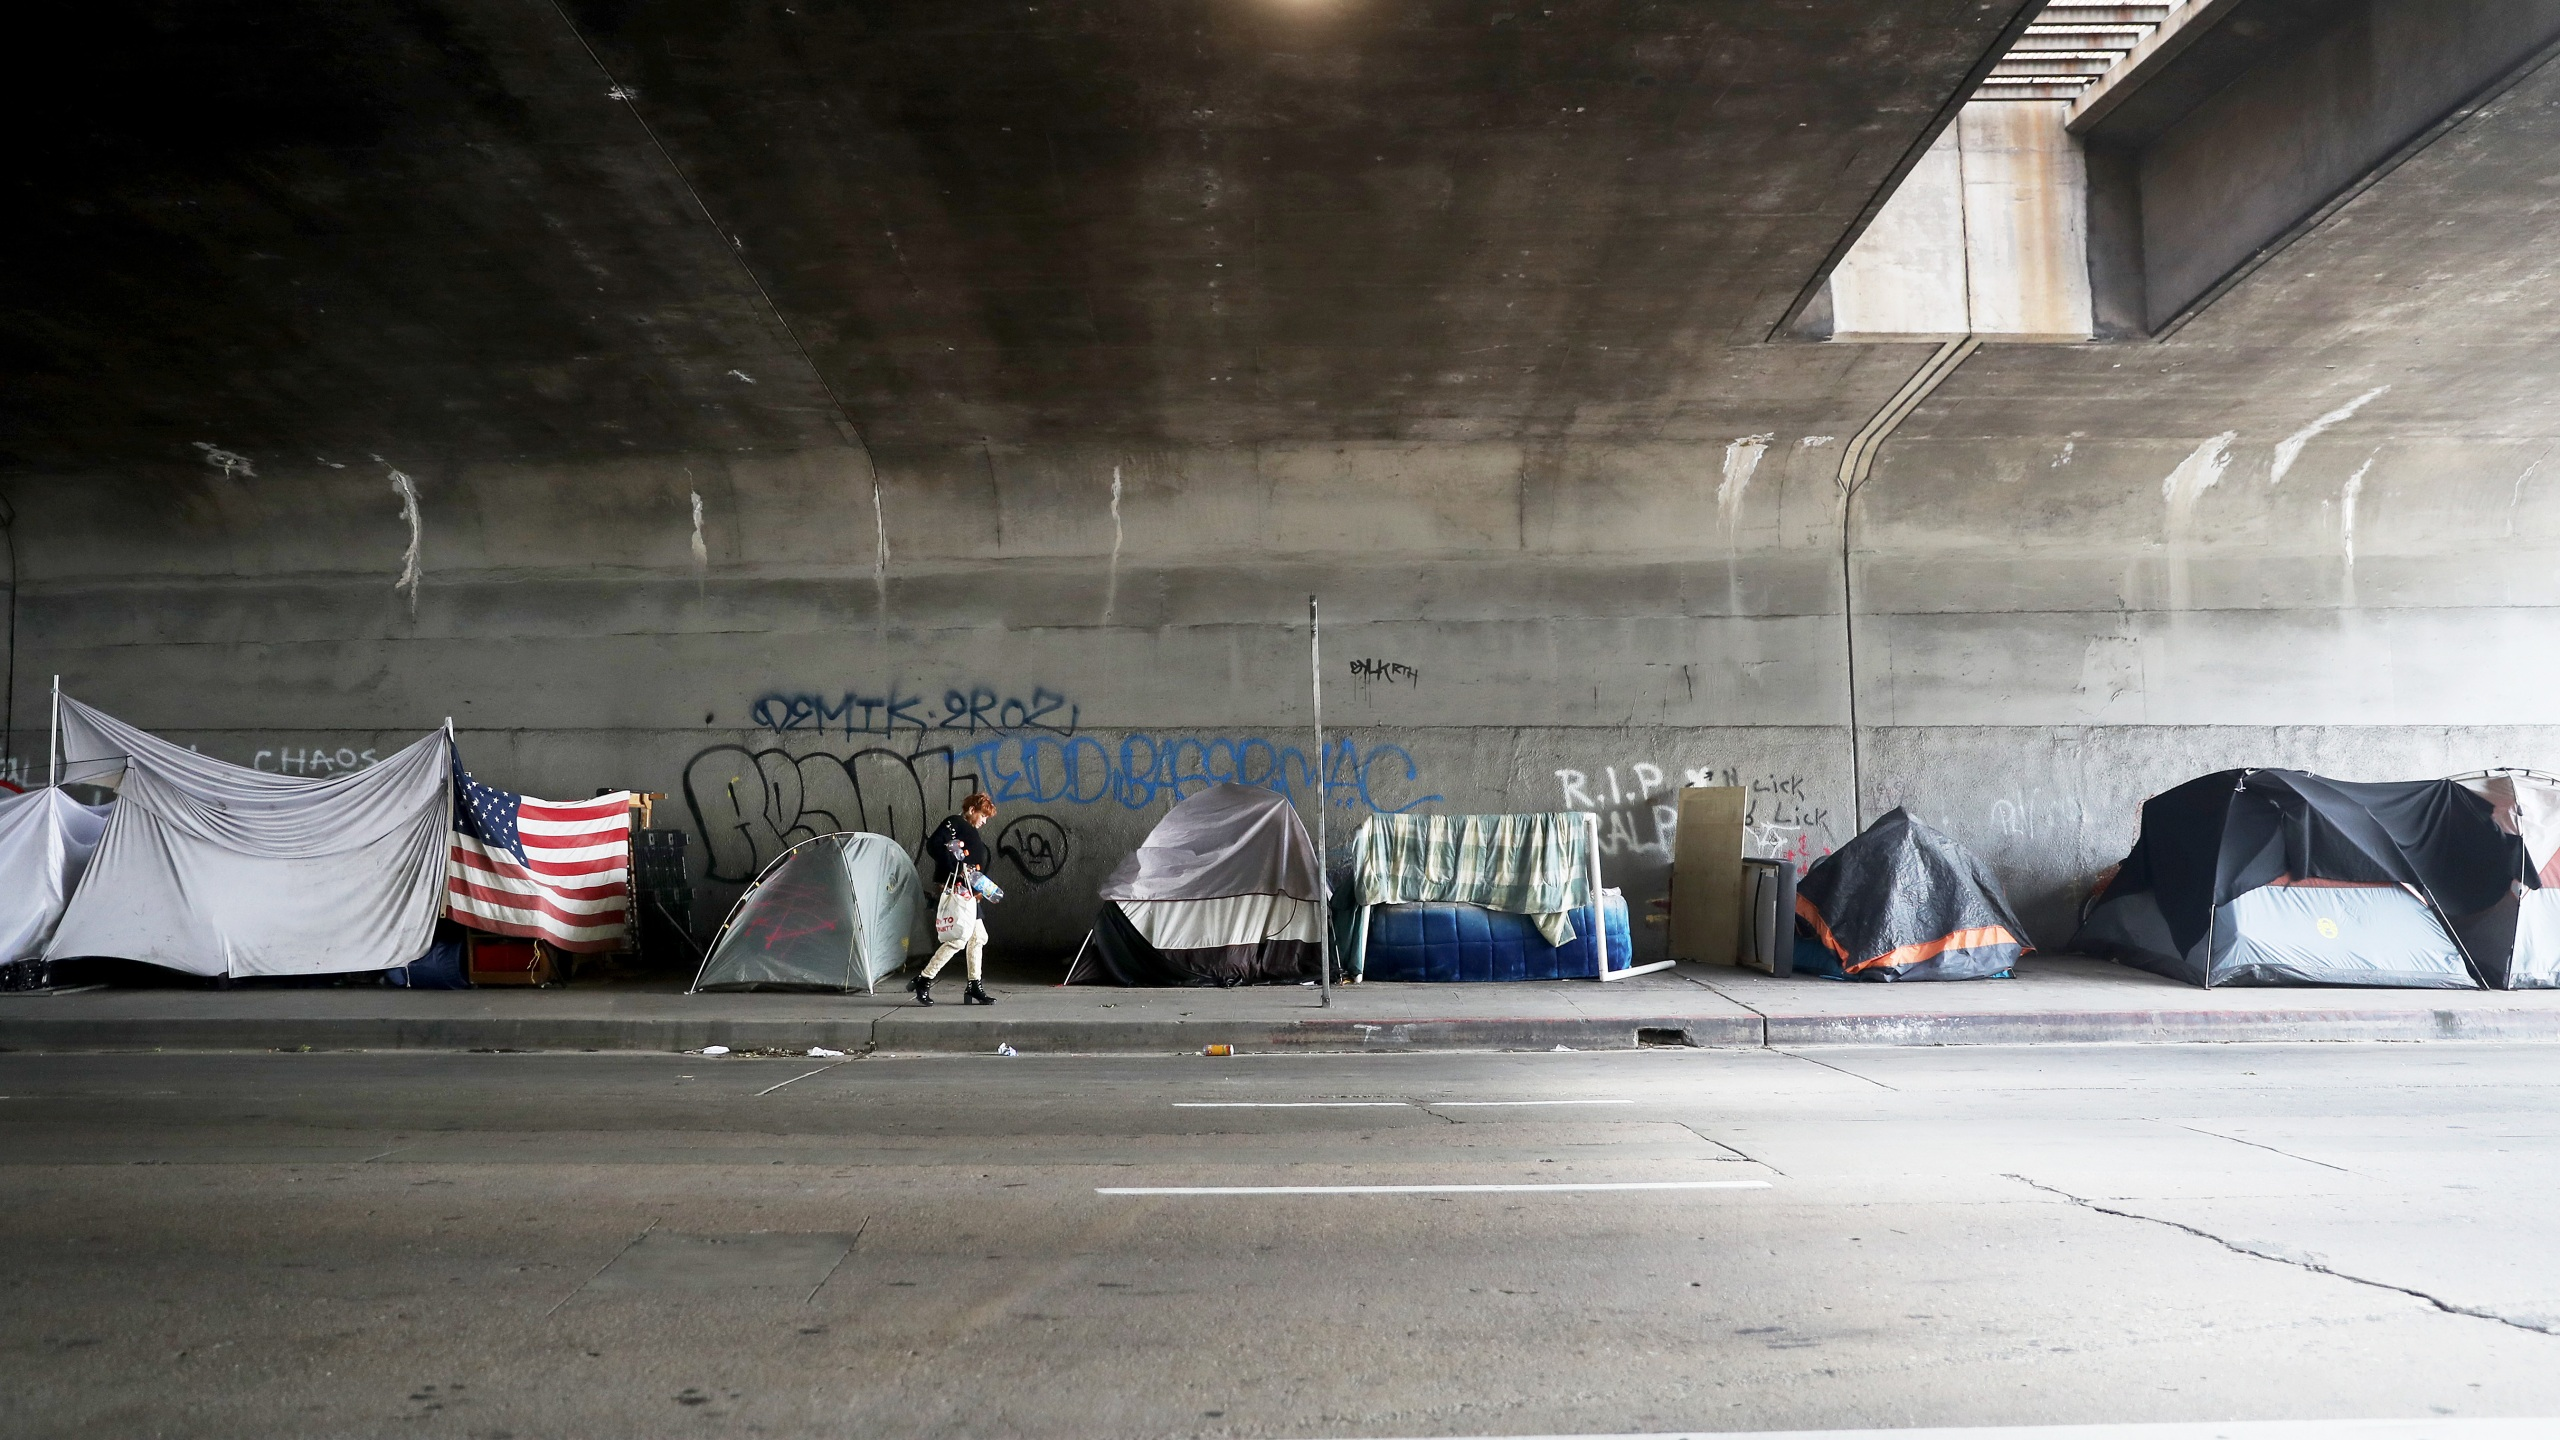 A woman walks past a homeless encampment beneath an overpass in Los Angeles, with an American flag displayed, amid the coronavirus pandemic on April 4, 2020. (Mario Tama / Getty Images)